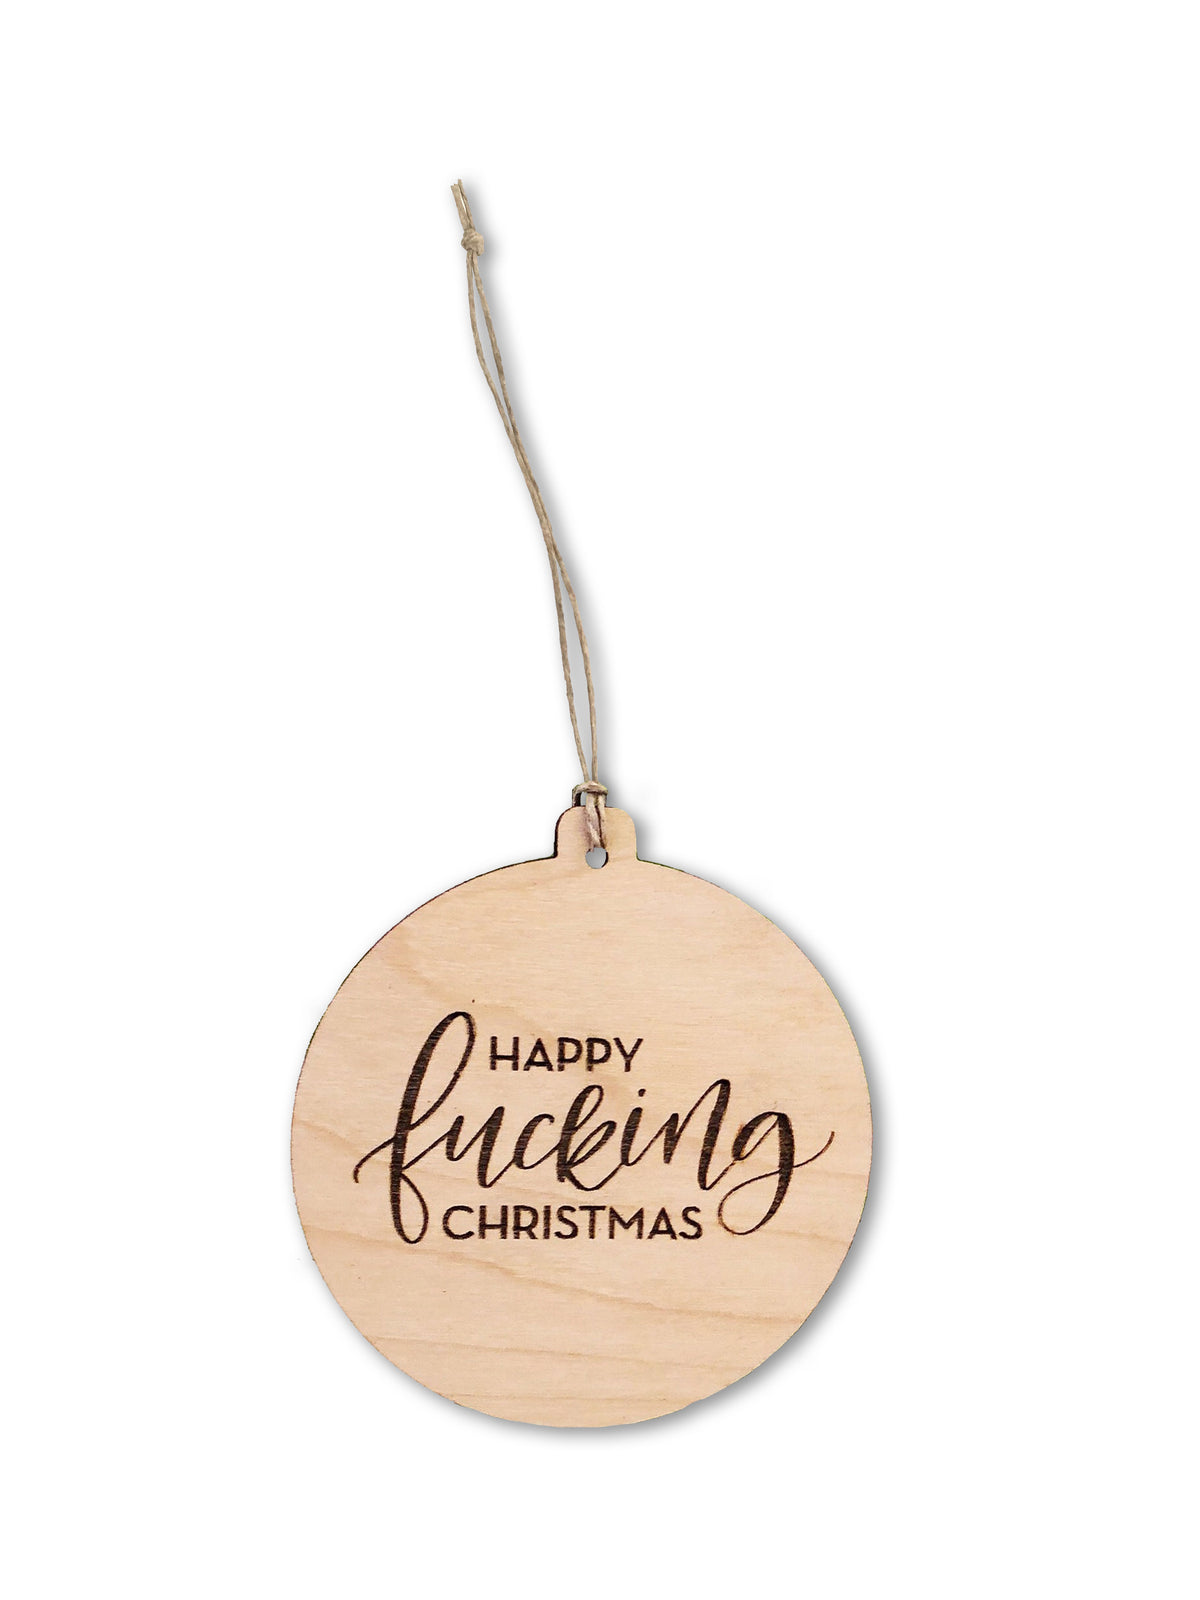 Happy F*cking Christmas ORNAMENT